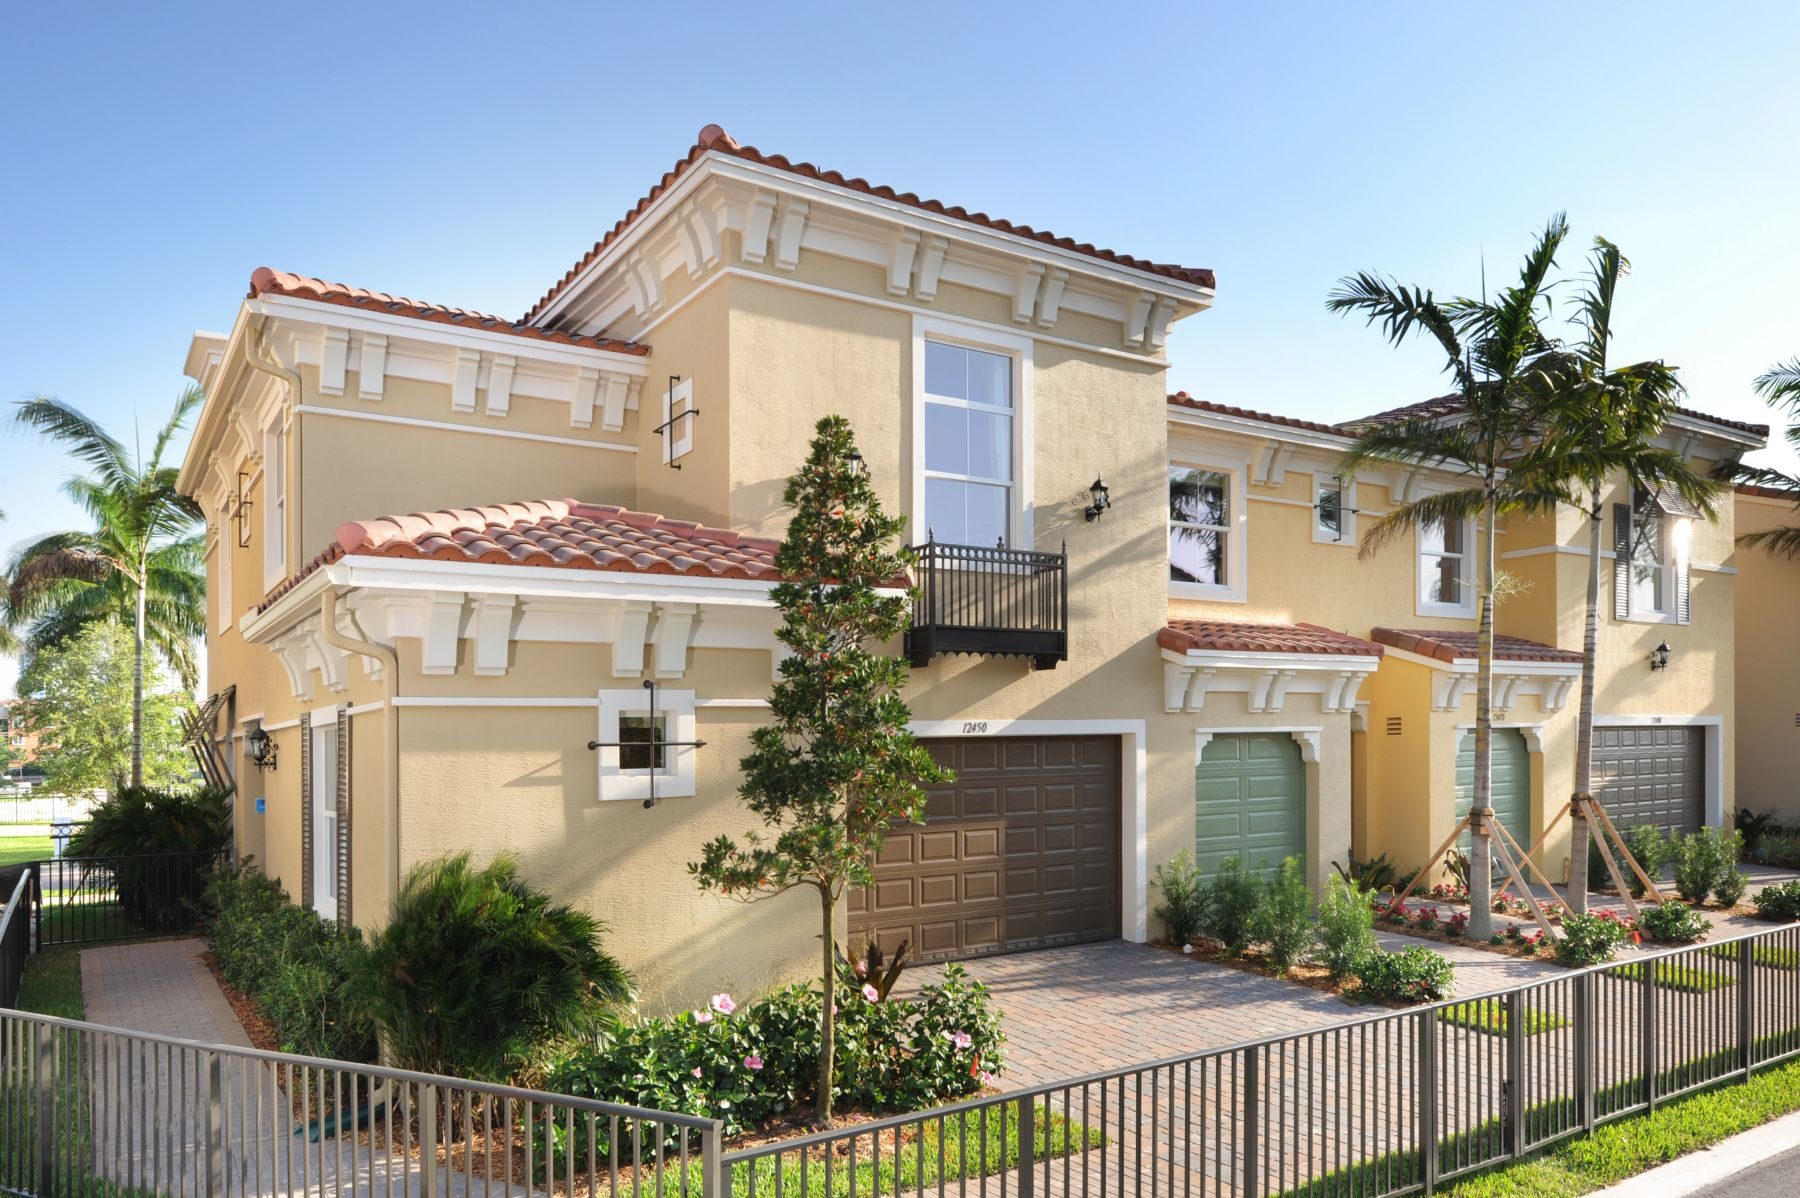 New Construction Homes & Plans in Sunrise, FL | 3,806 Homes